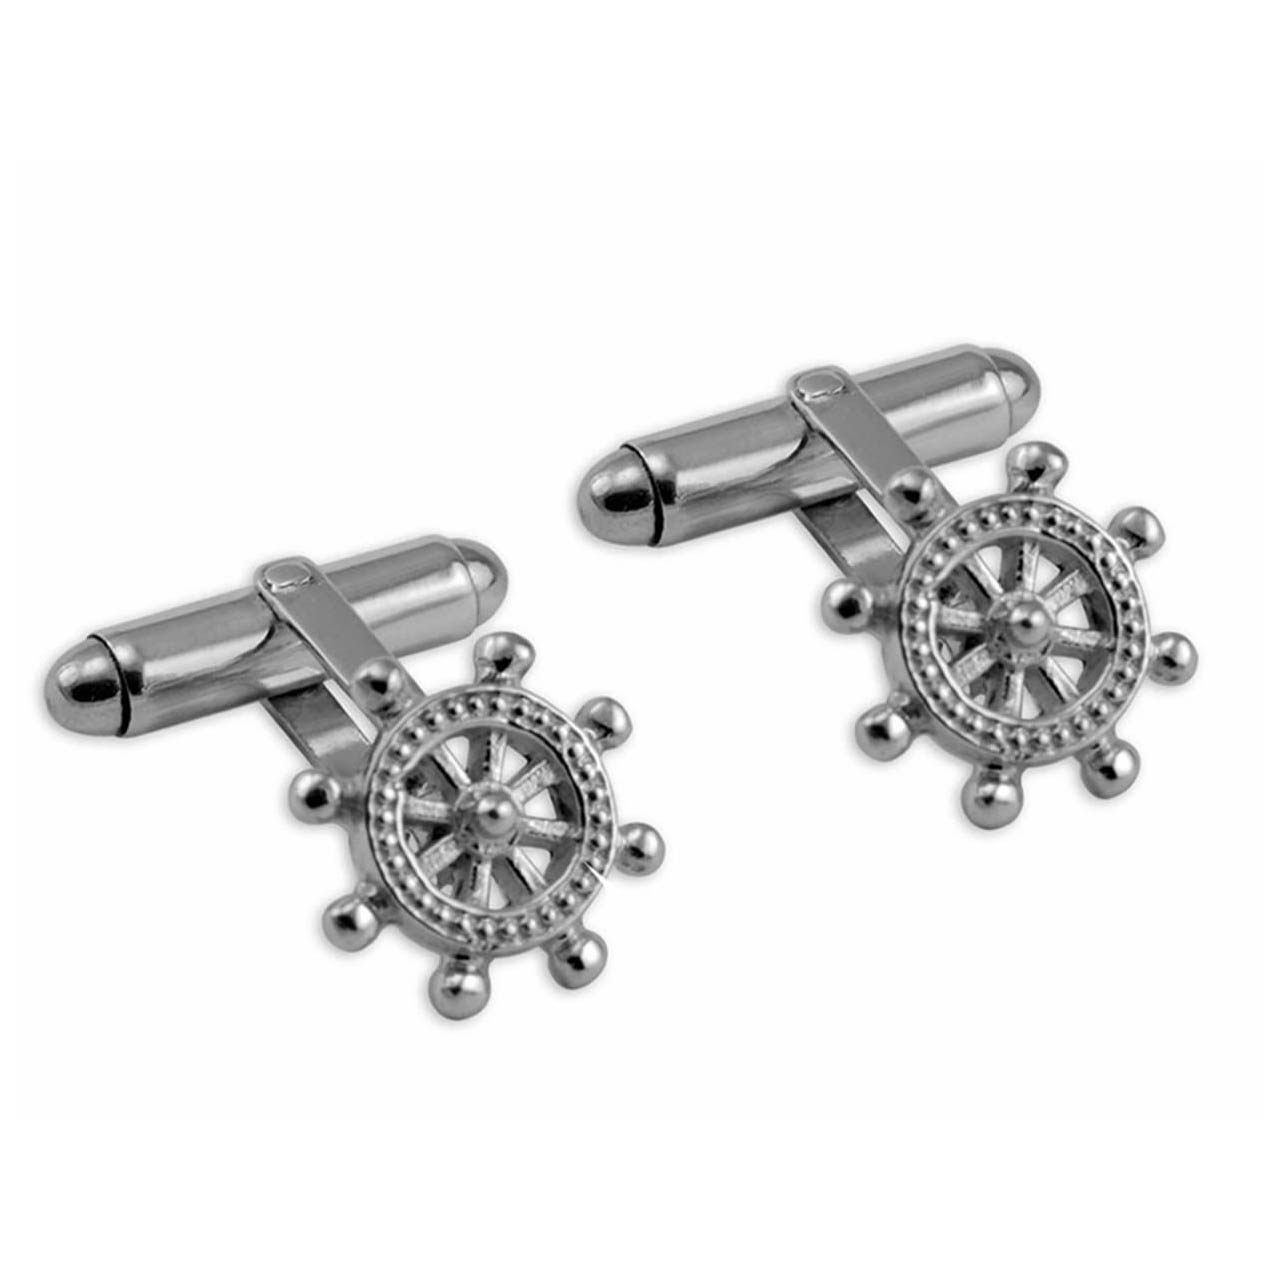 Sterling Silver Ships Steering Wheel Cufflinks